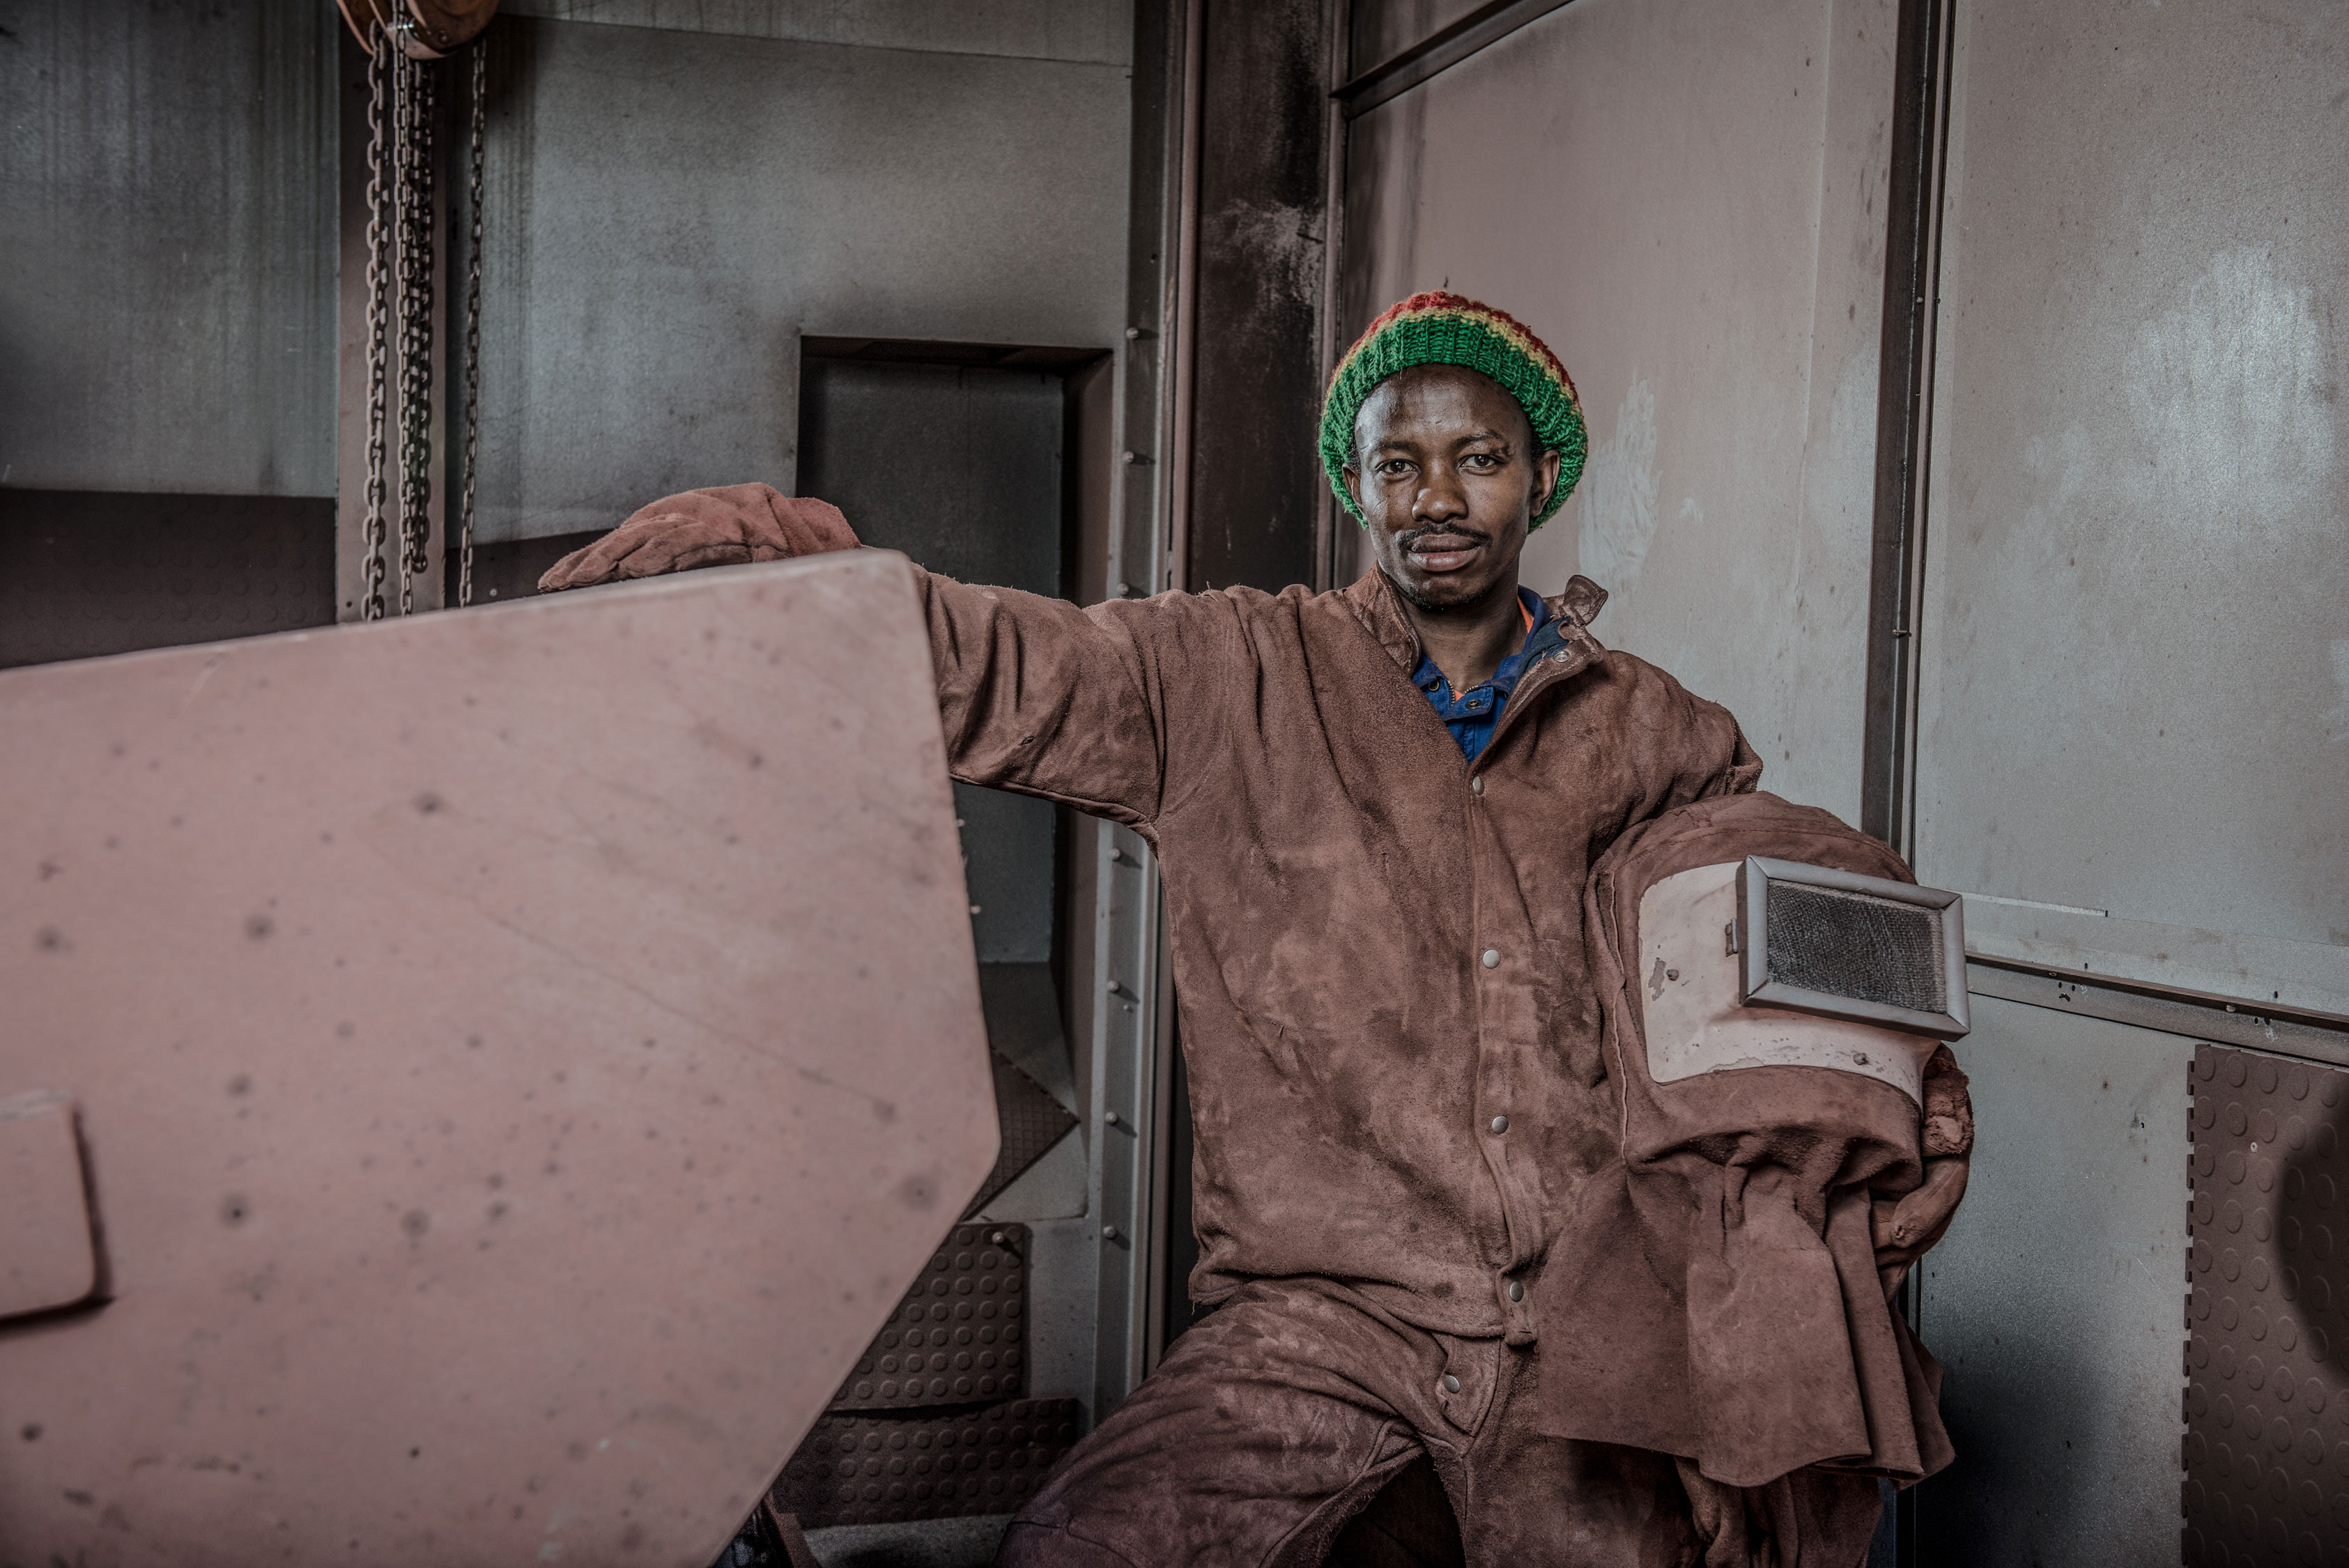 Welder at work in South Africa